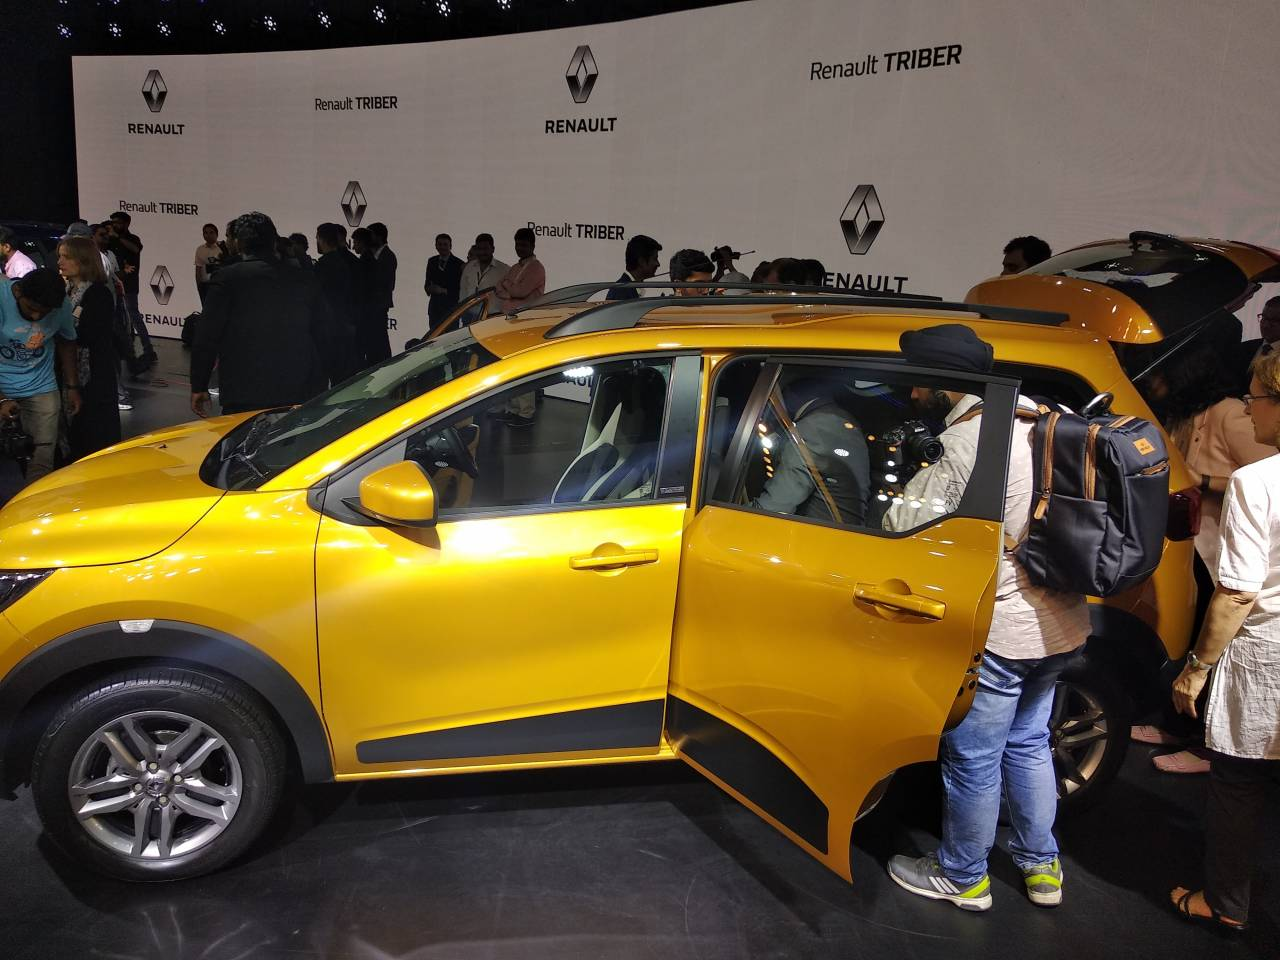 Triber is the second multi-seater vehicle from the French carmaker Renault. The company had earlier experimented by the Lodgy van which was well accepted in the commercial space. (Image: Moneycontrol)